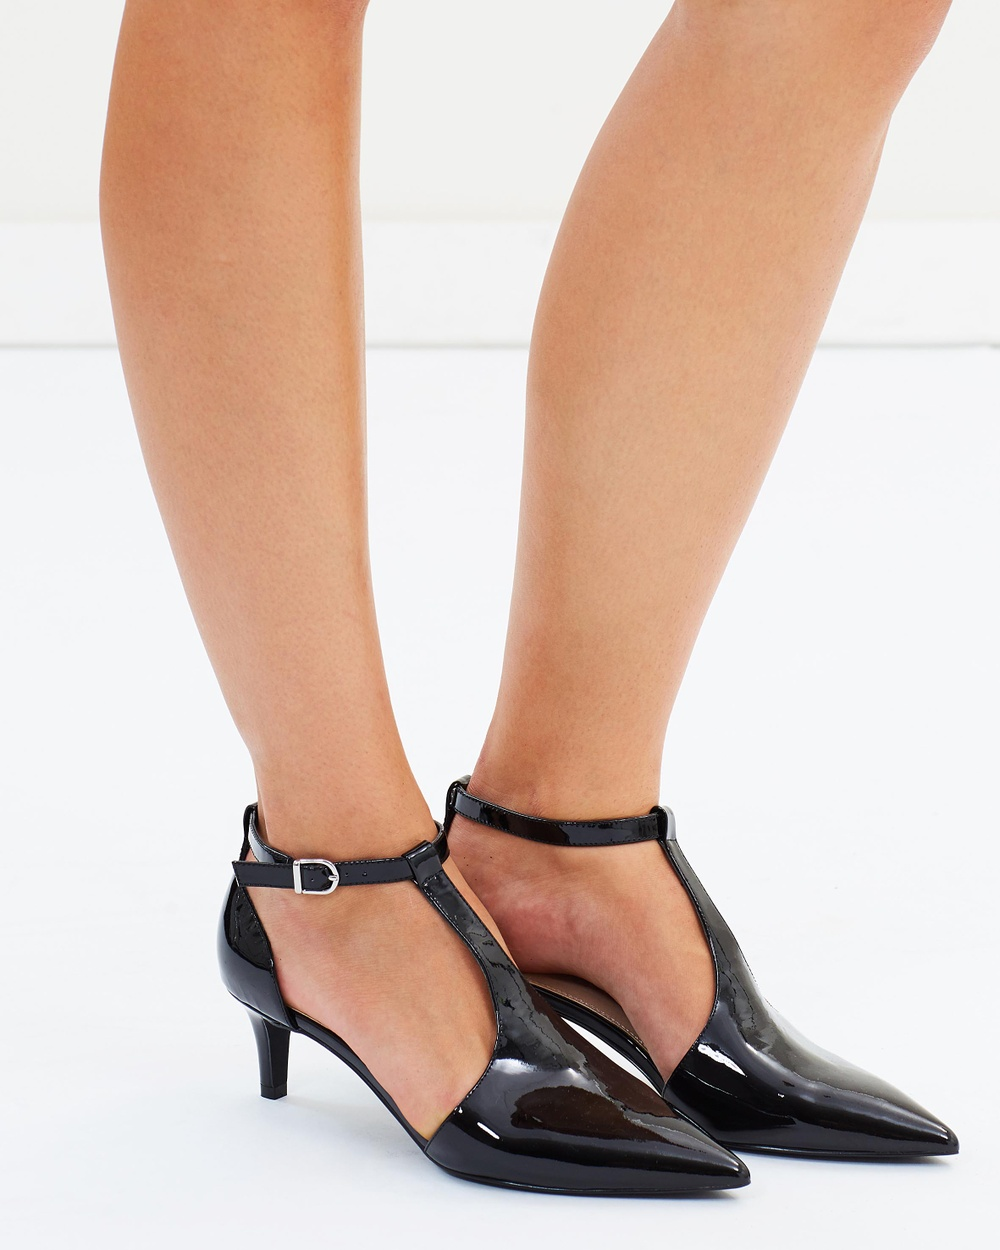 Atmos & Here ICONIC EXCLUSIVE Caelan Leather Heels Mid-low heels Black Patent ICONIC EXCLUSIVE Caelan Leather Heels